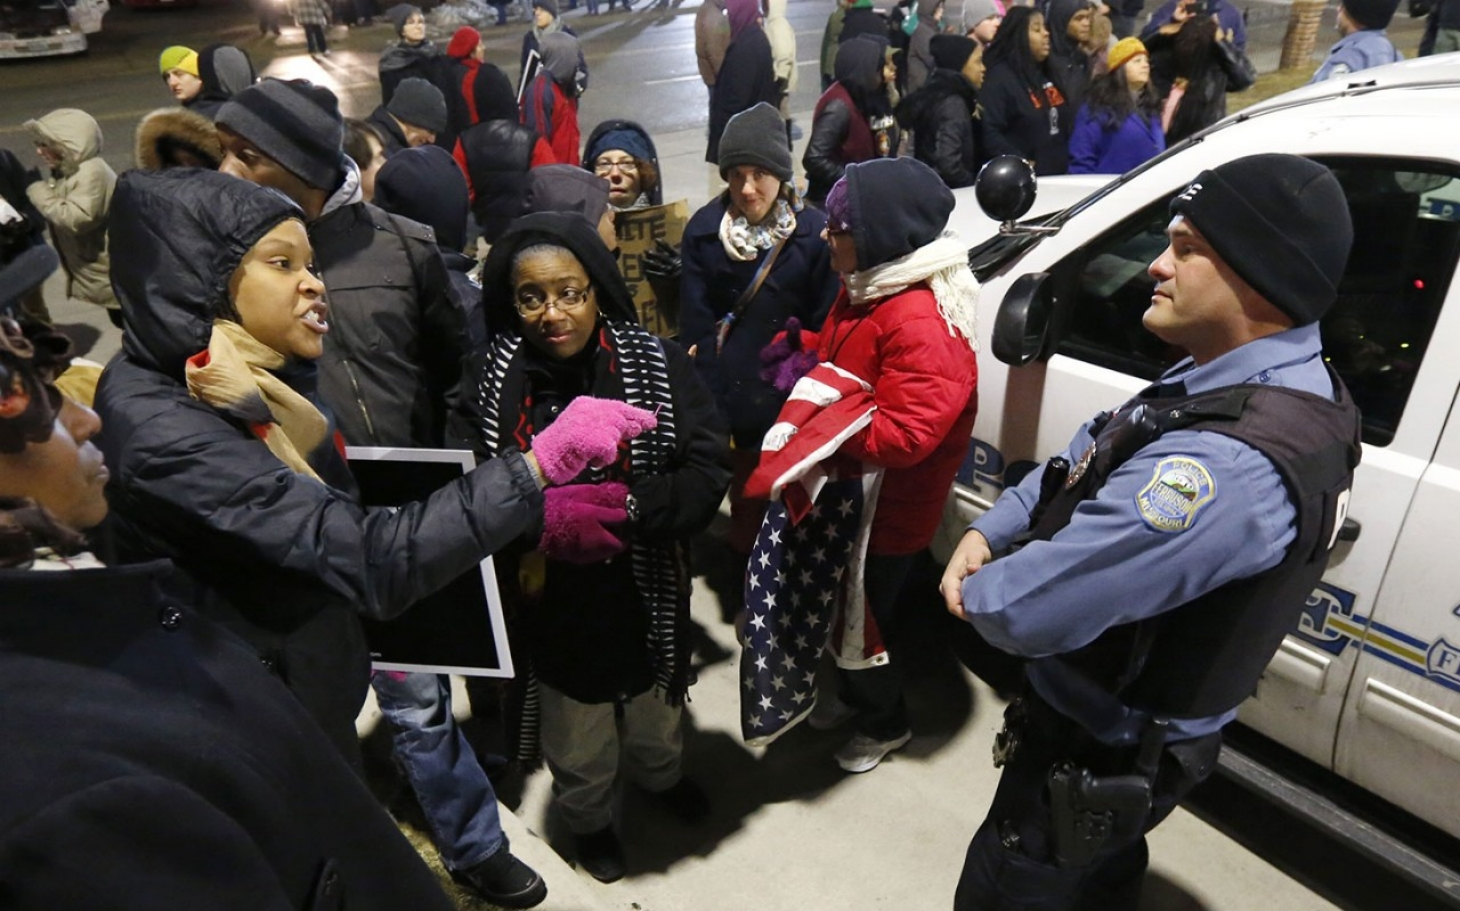 ferguson police officer essay Protesters were marching after ferguson police chief tom jackson's a 32-year-old webster groves police officer with 5-years of service was shot.